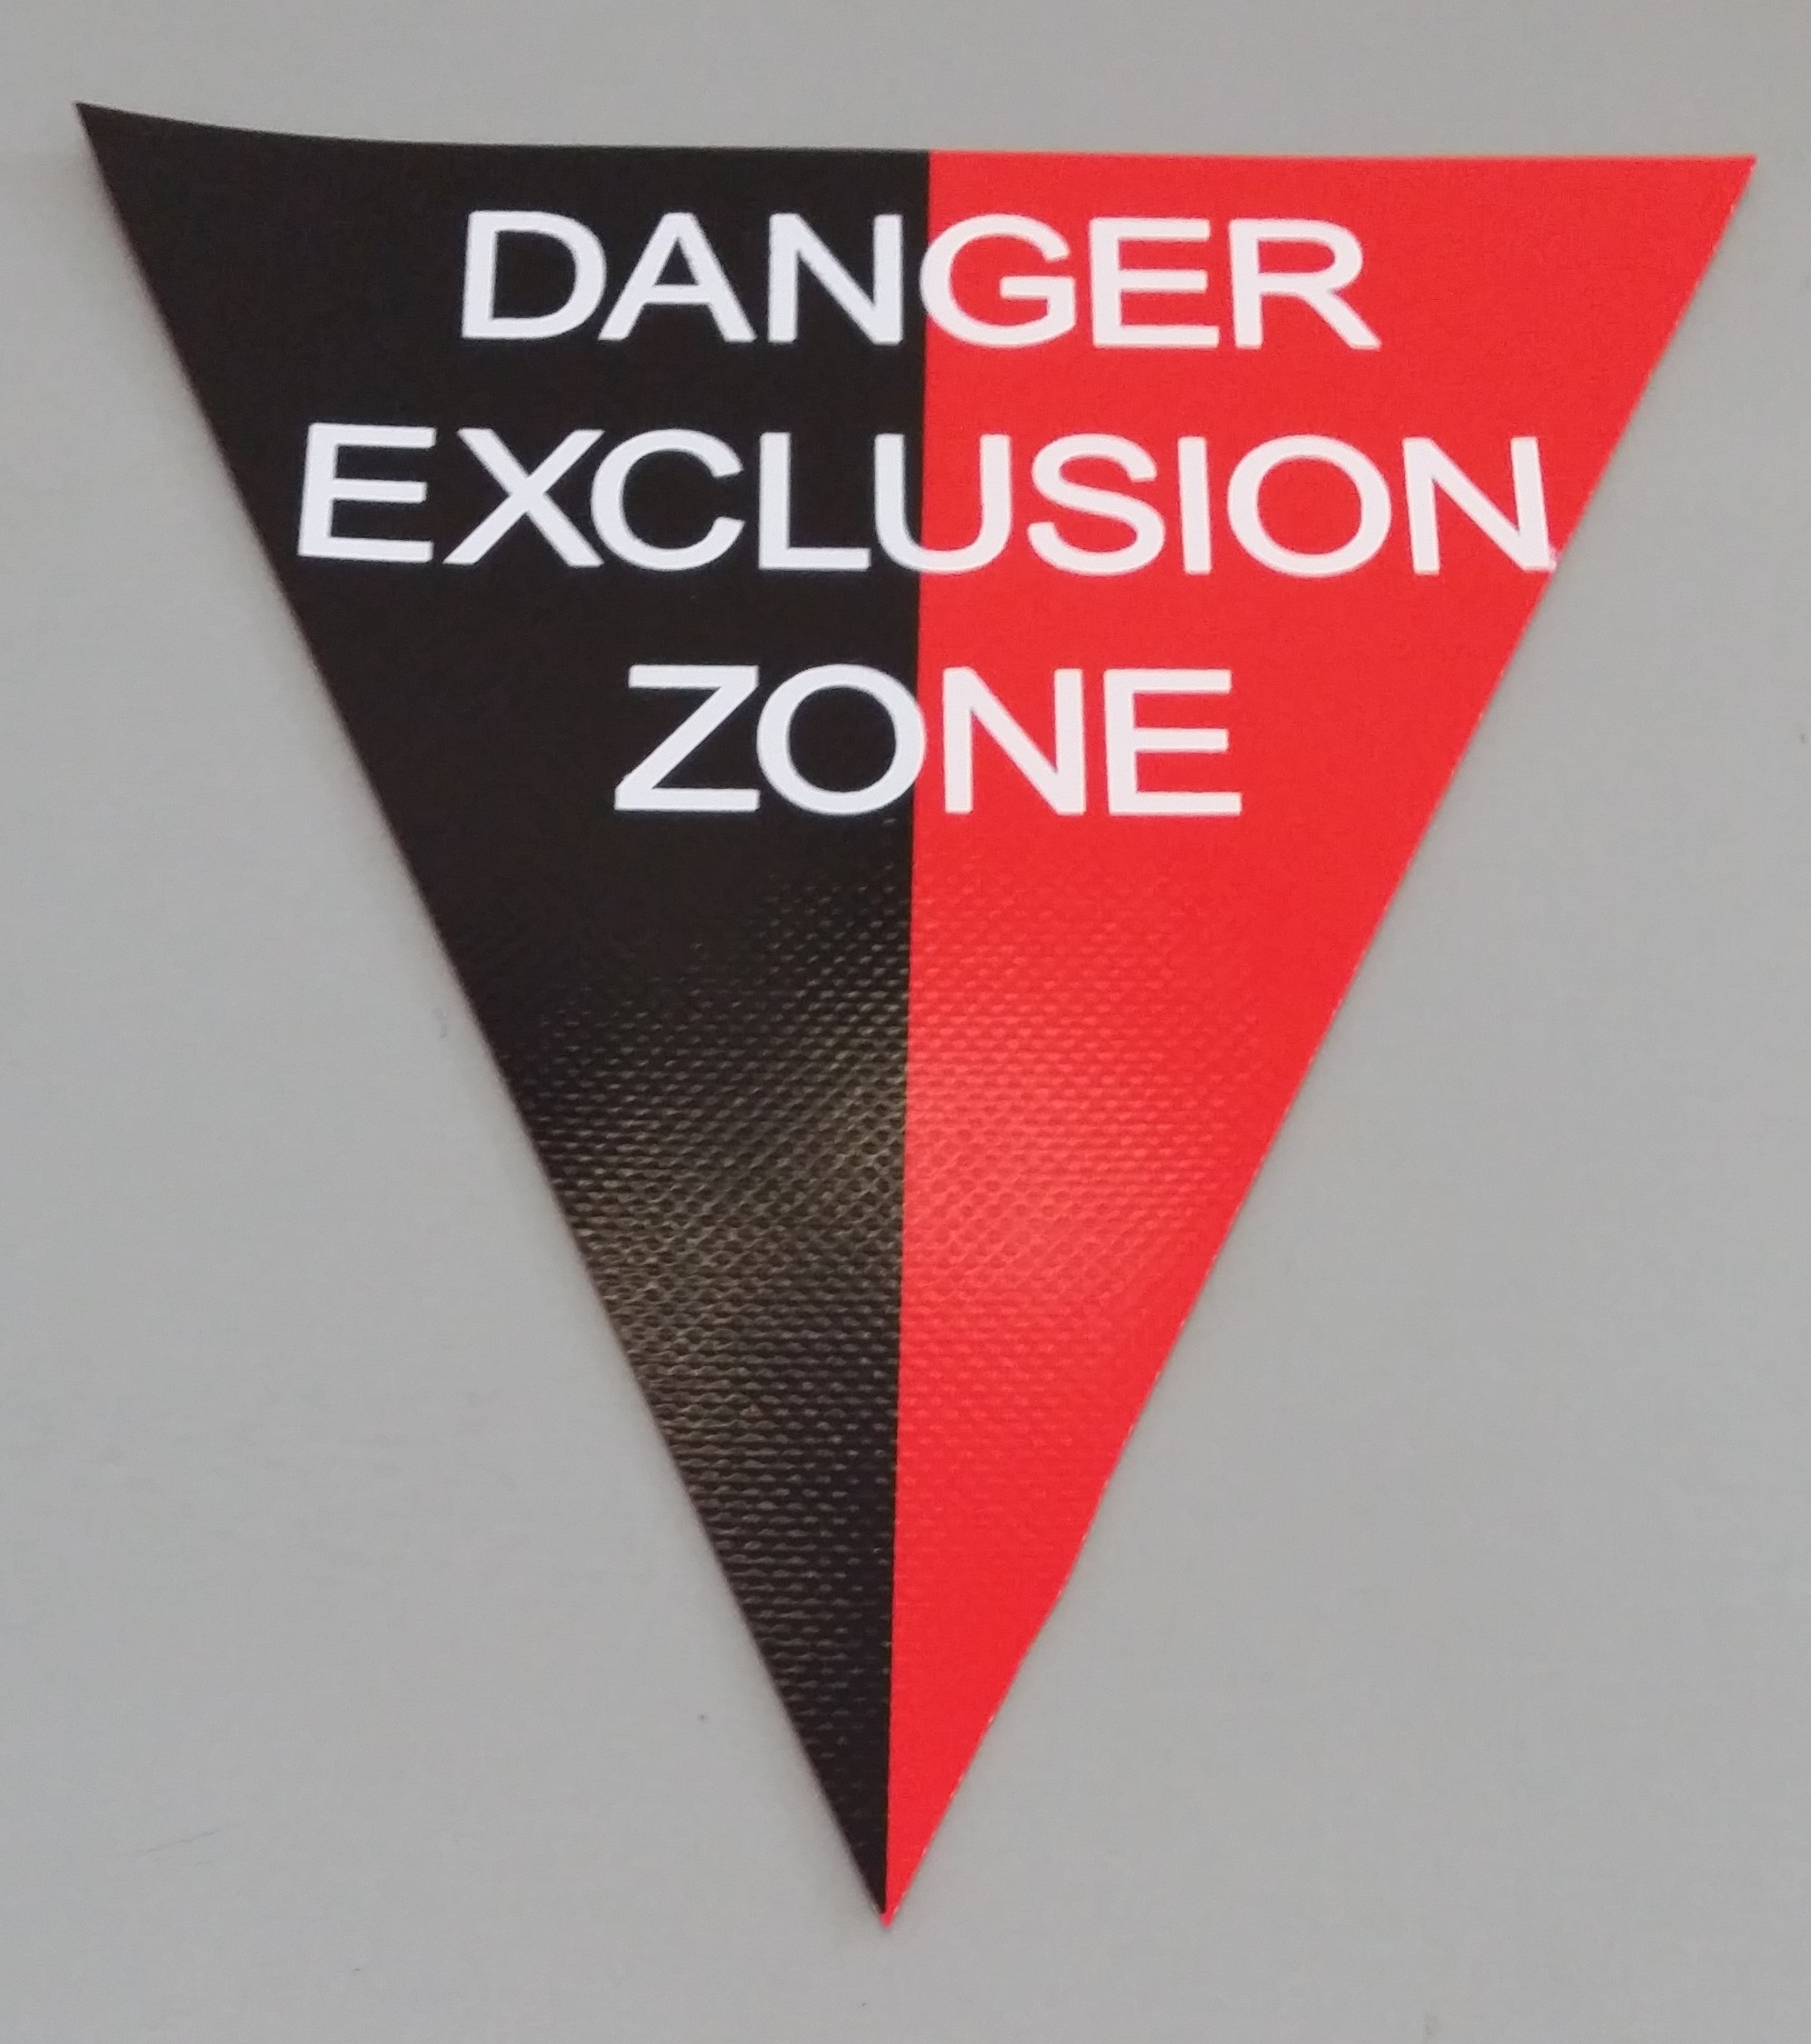 Danger Exclusion Zone (red/black with white print)